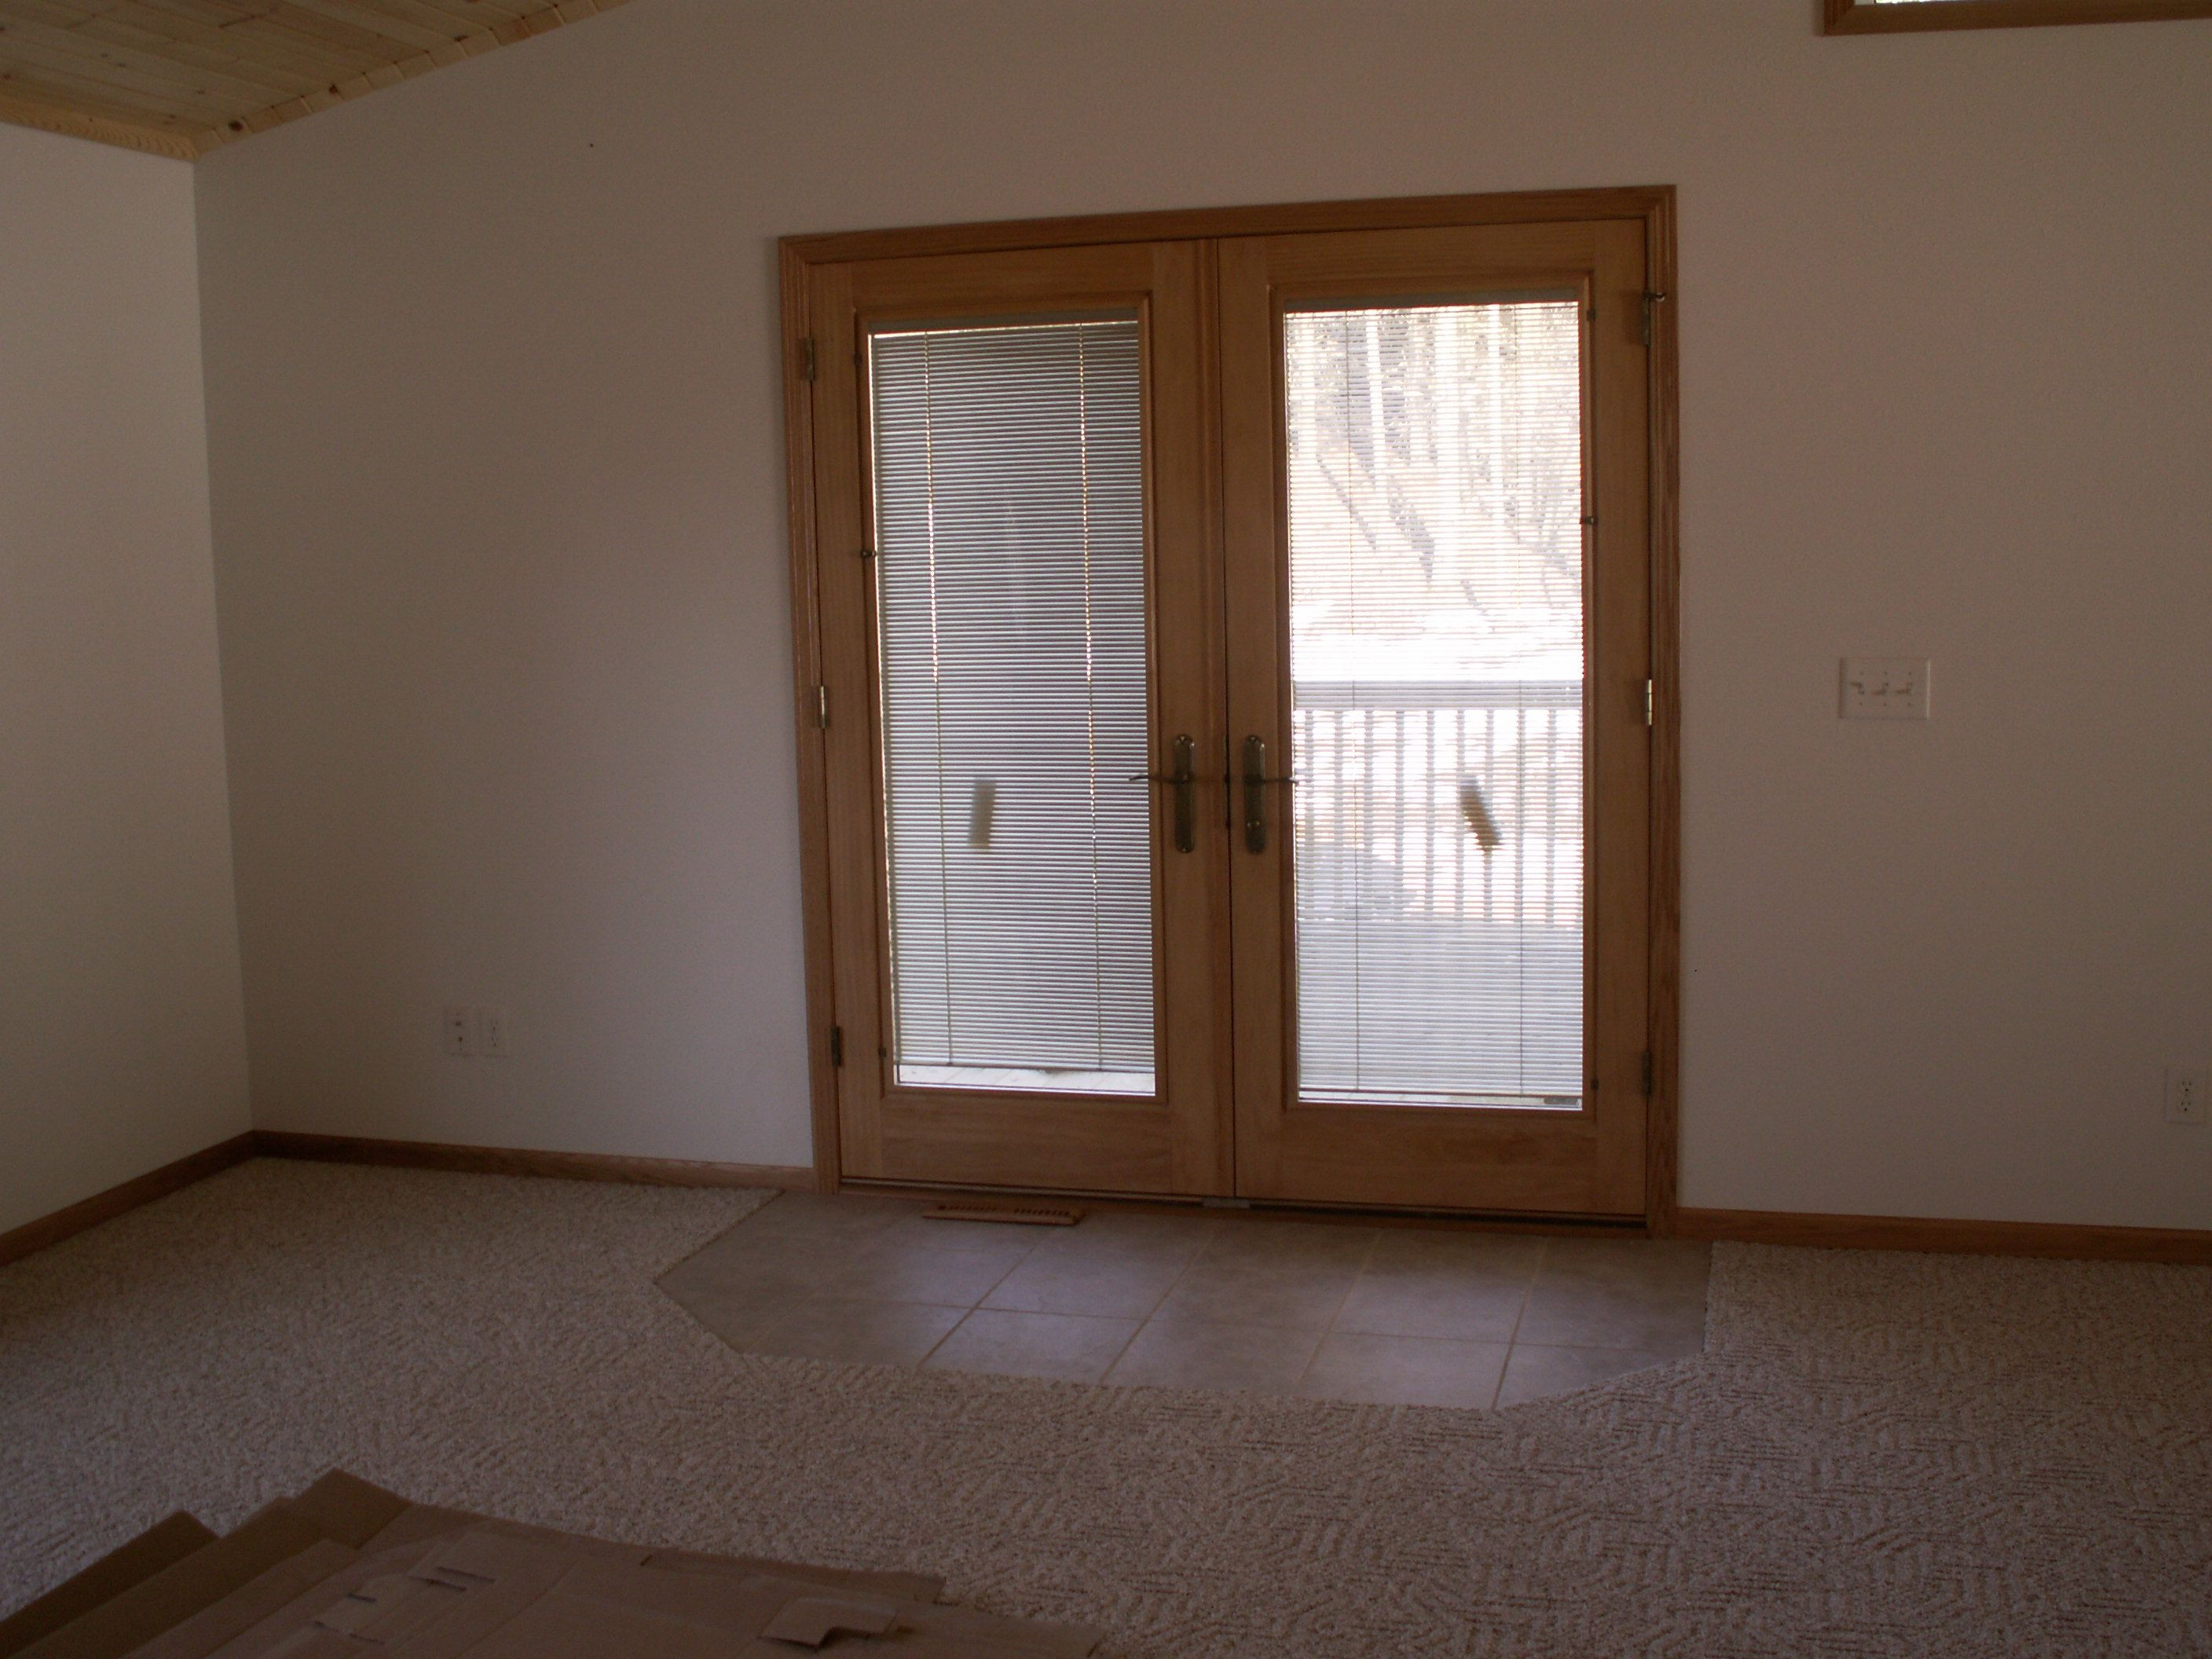 Pella vinyl sliding patio door with blinds togethersandia